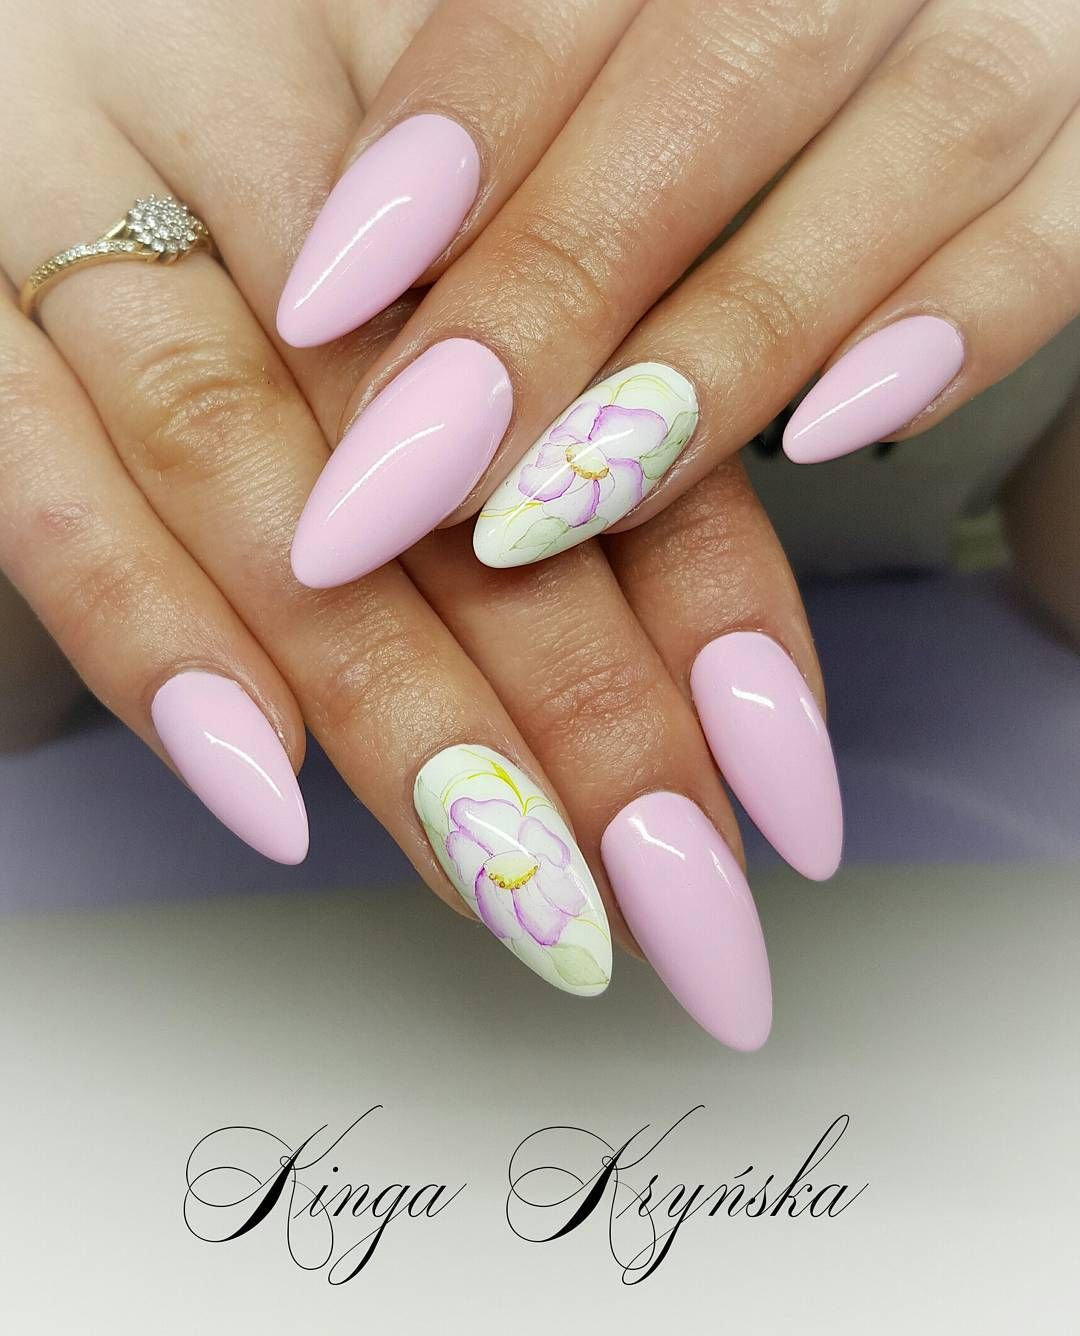 Aquarelle Nails Naildesign Indigonails Nailfashion Nailpolish